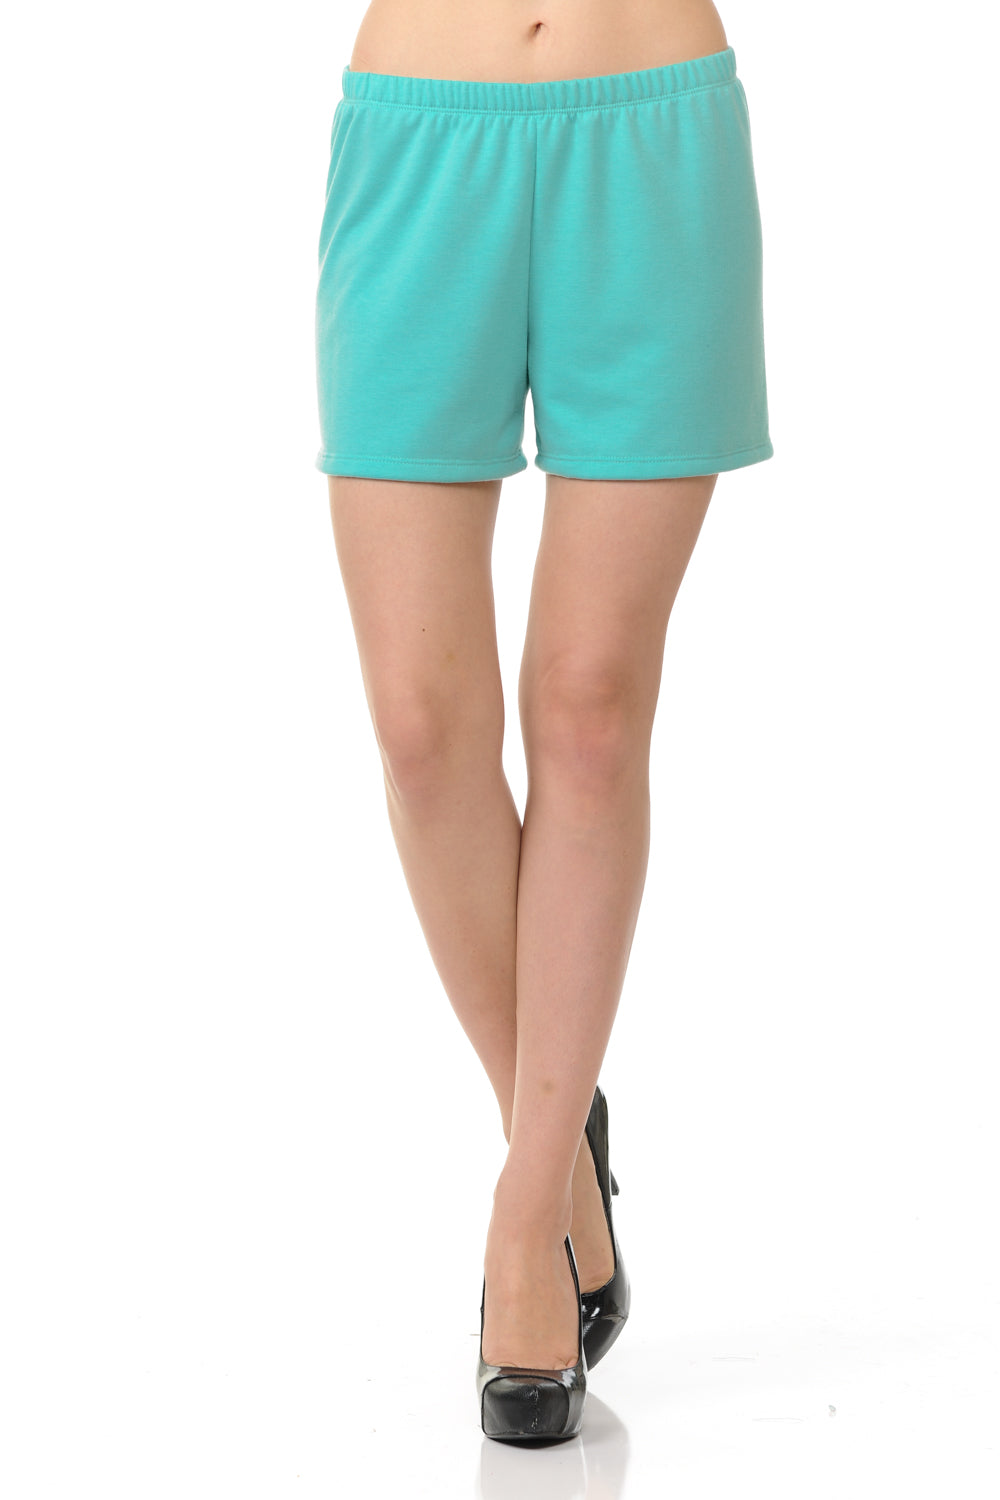 bluensquare Women Knit Shorts Summer Spa Pajama Casual Lounge- Aqua Mint